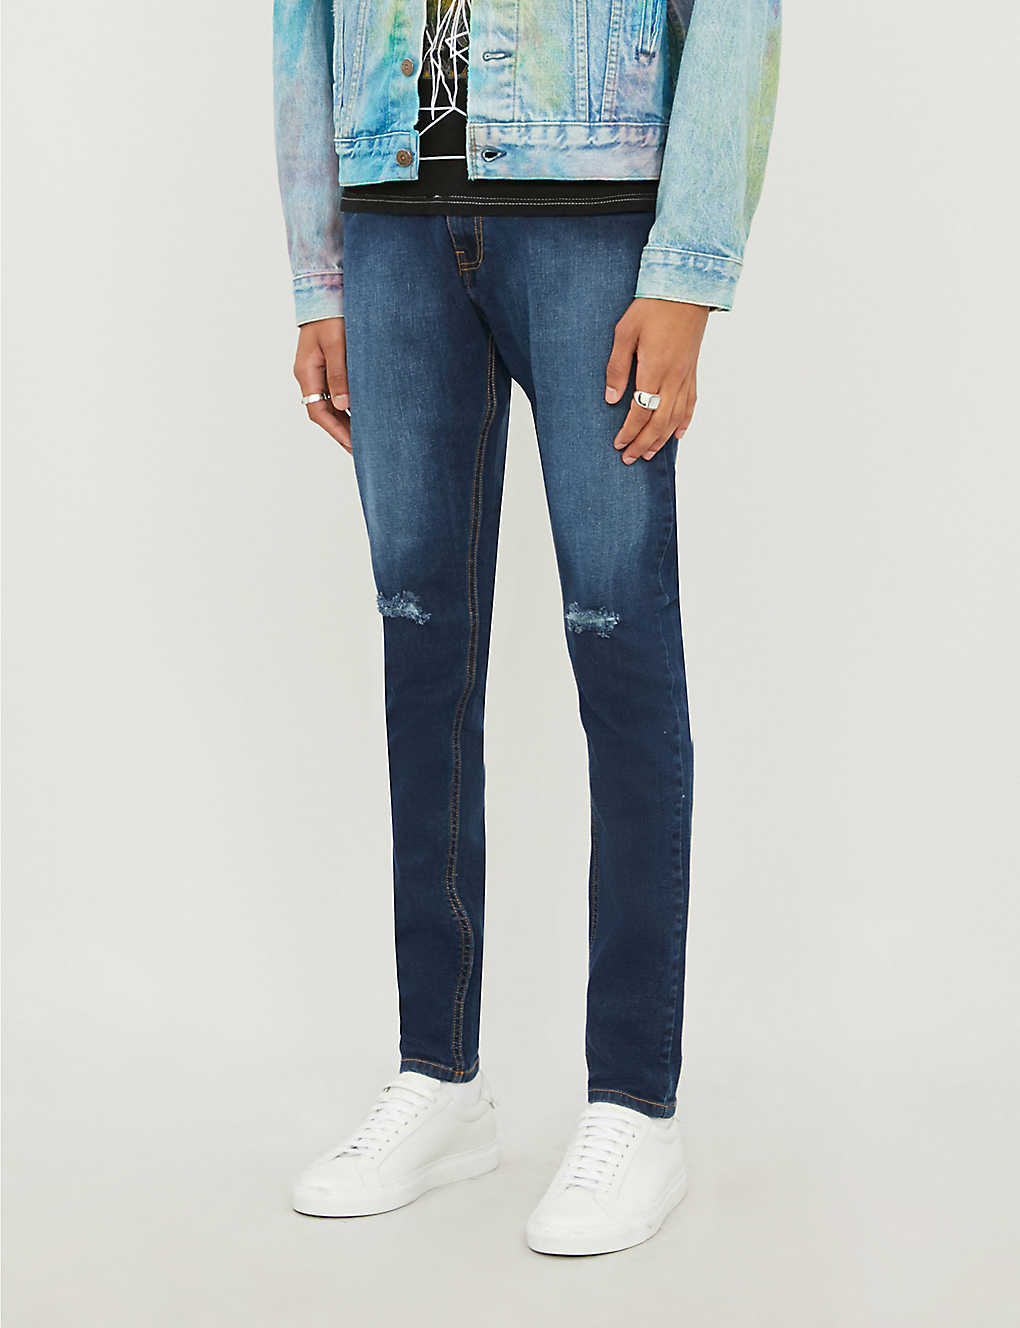 NO.91: Ripped skinny jeans